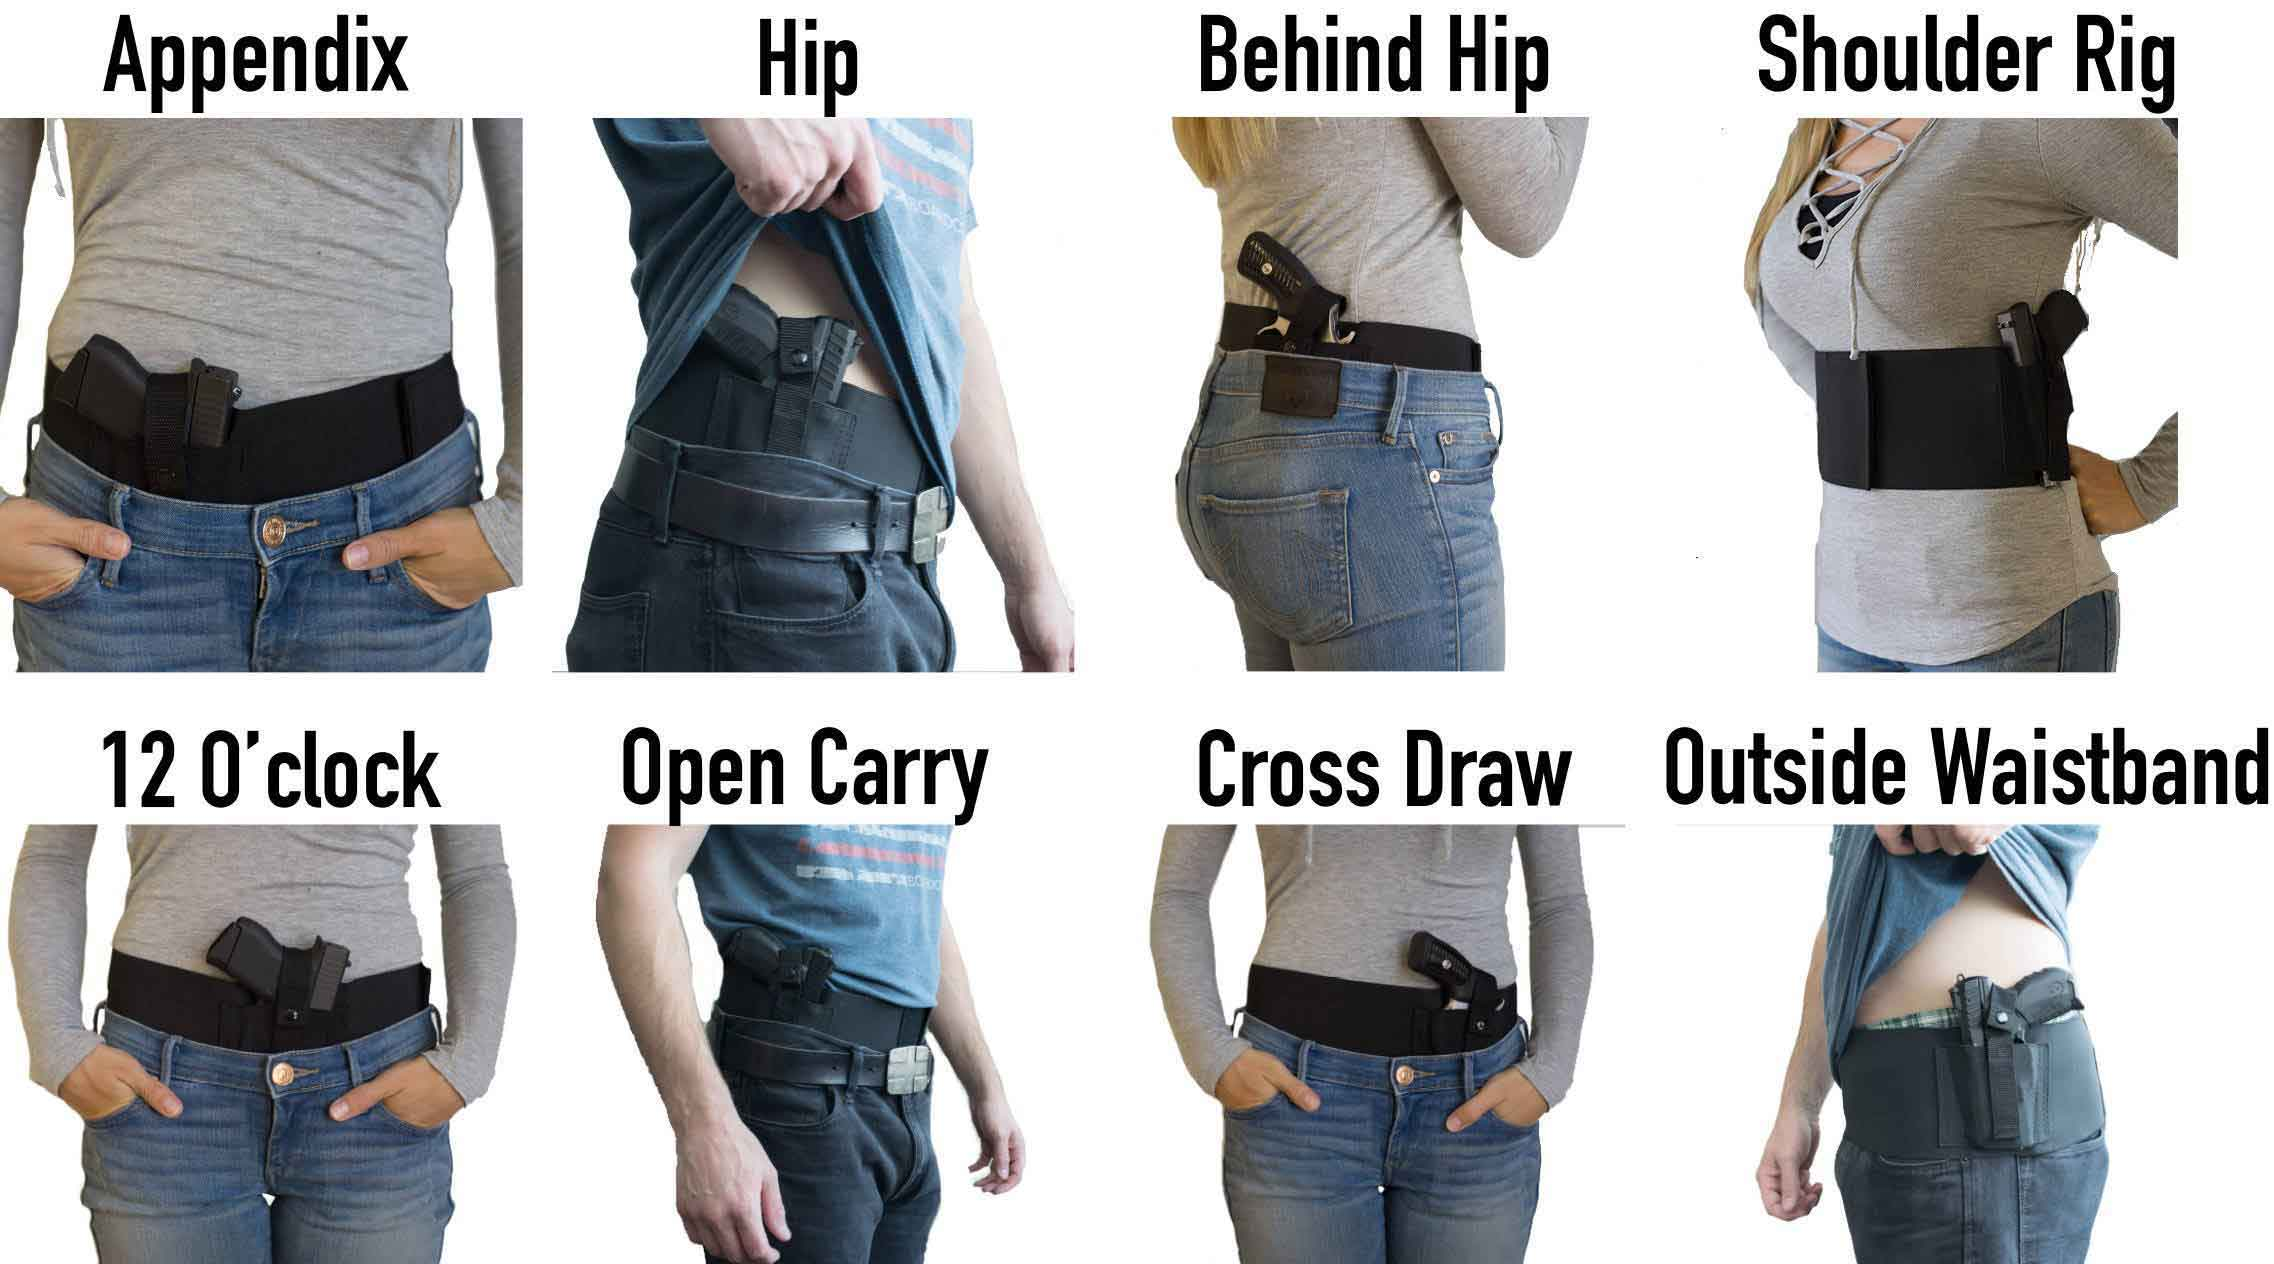 you can wear dragon belly holster appendix, hip, behind hip, soulder rig, 12 o'clock, open carry, cross draw, outside waistband, inside waistband